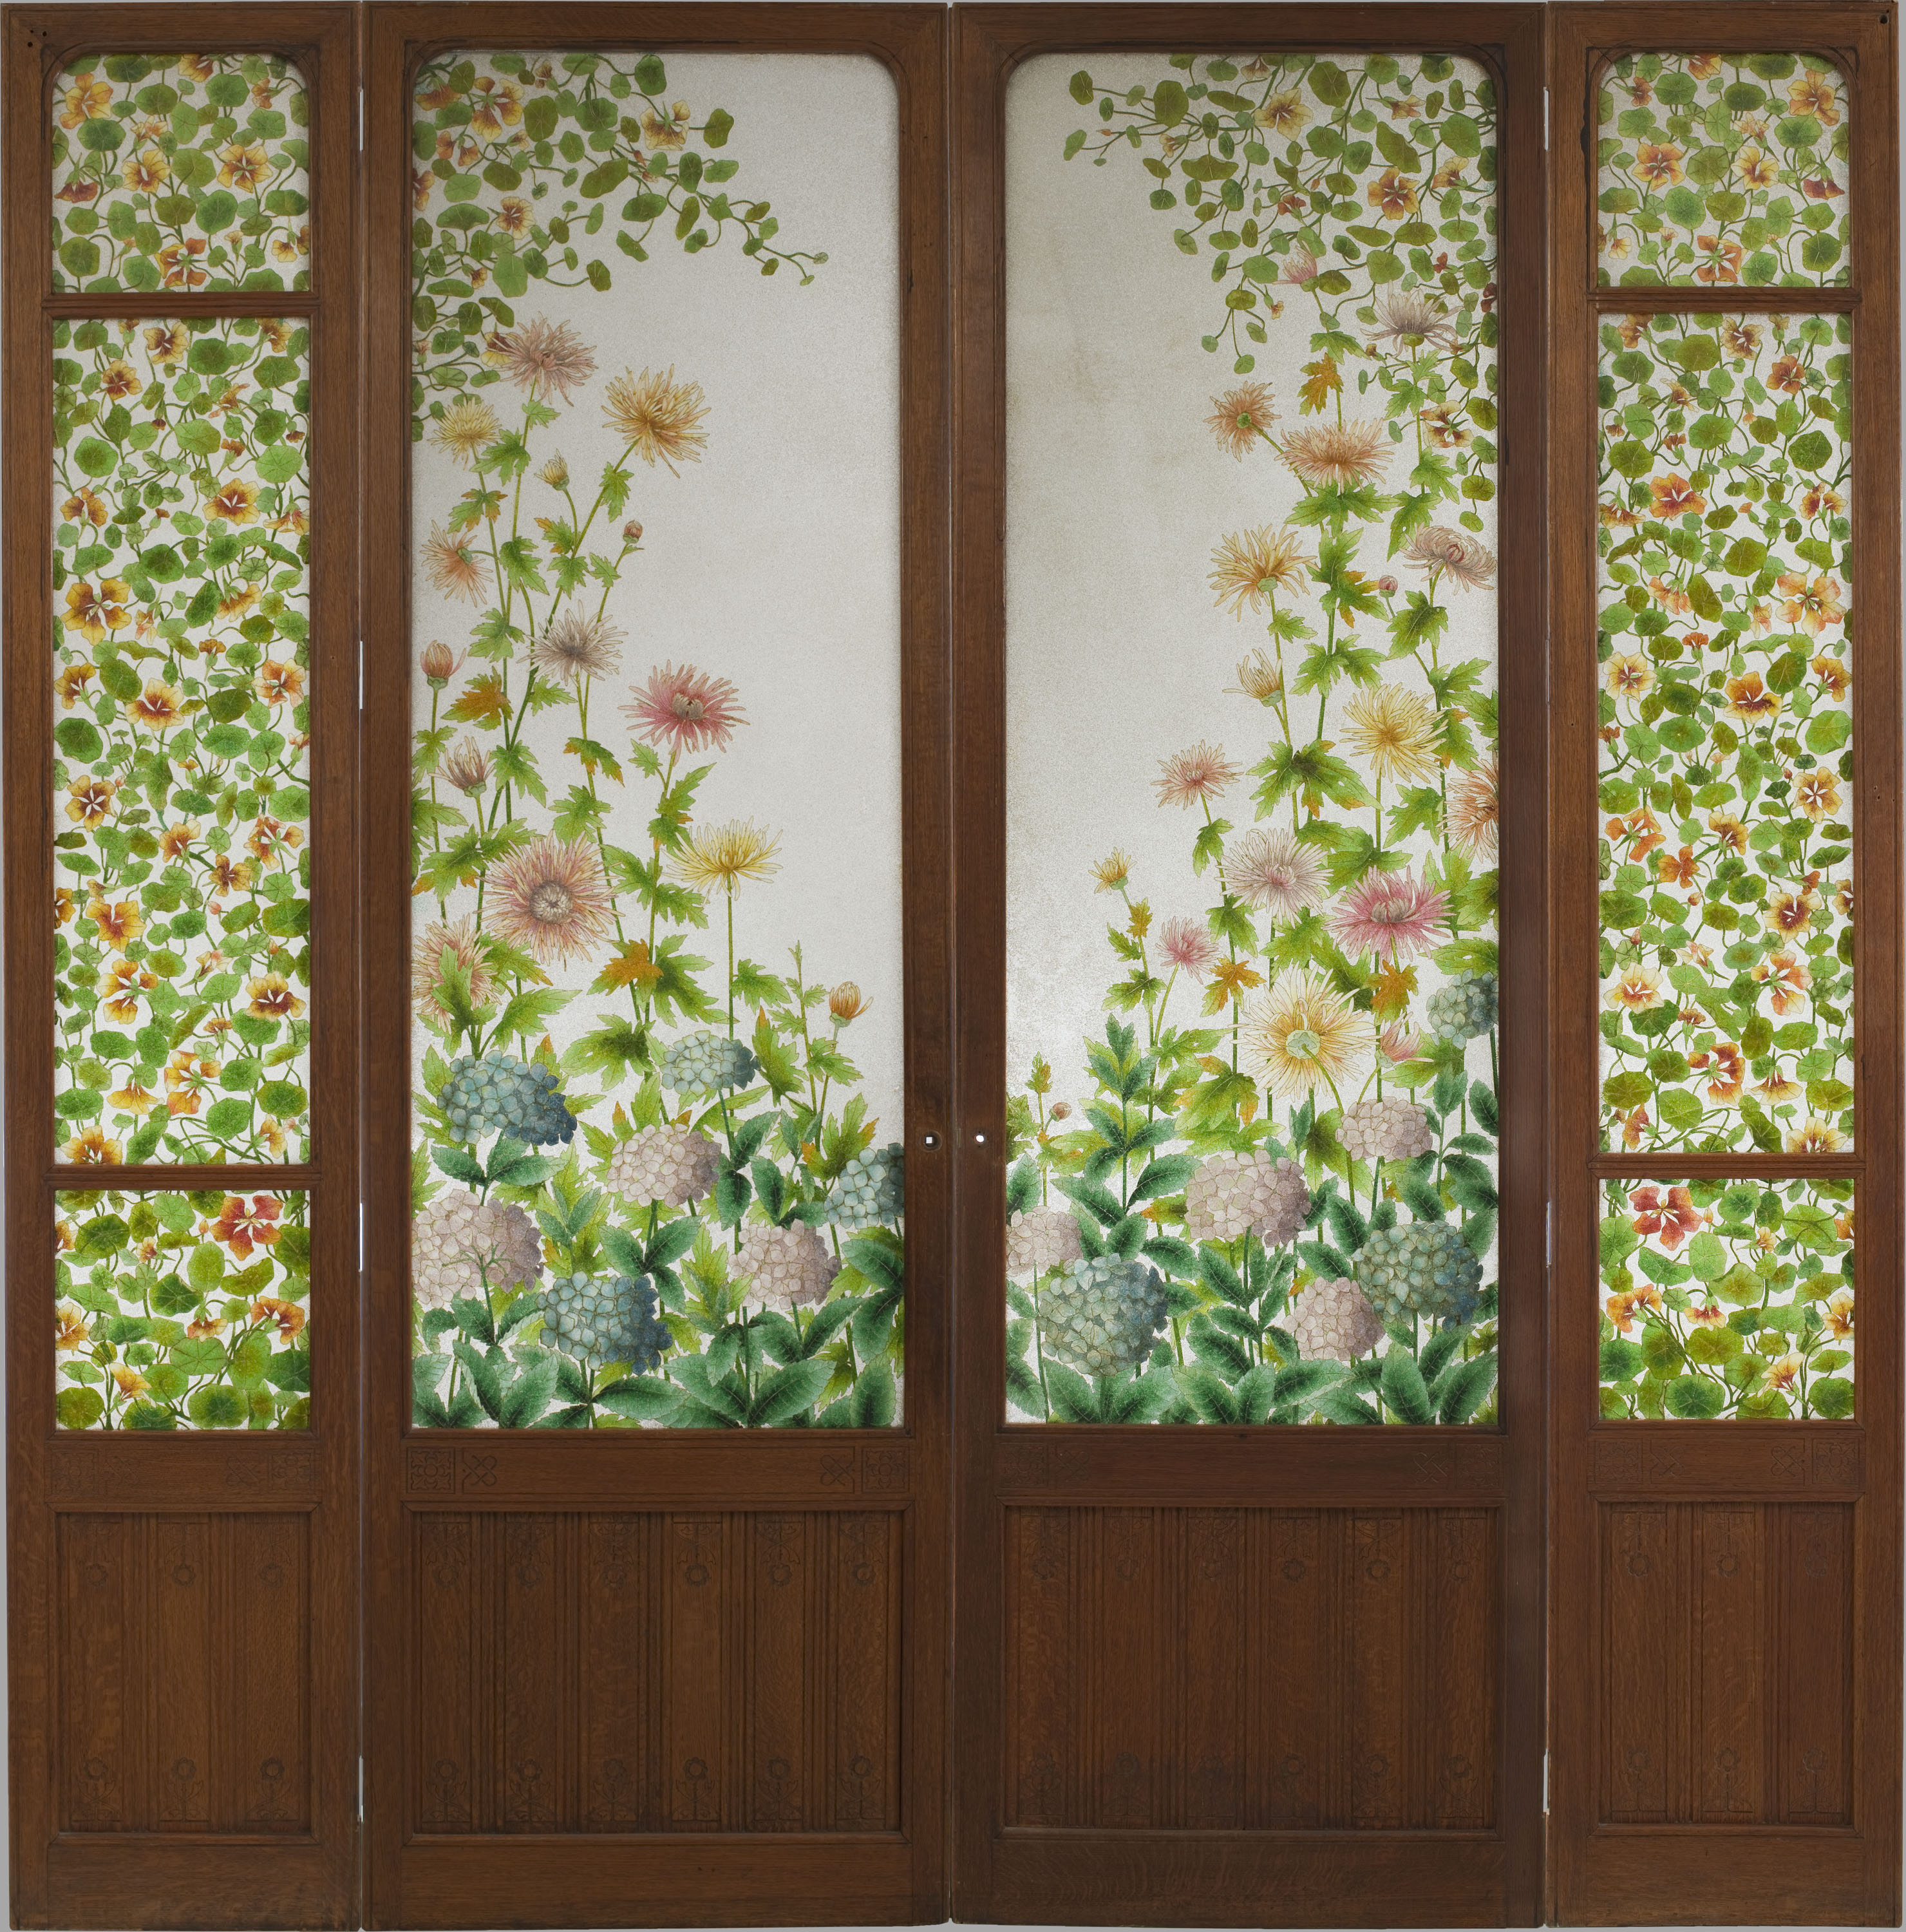 Frederic Vidal - Four-leafed glass door - Circa 1900